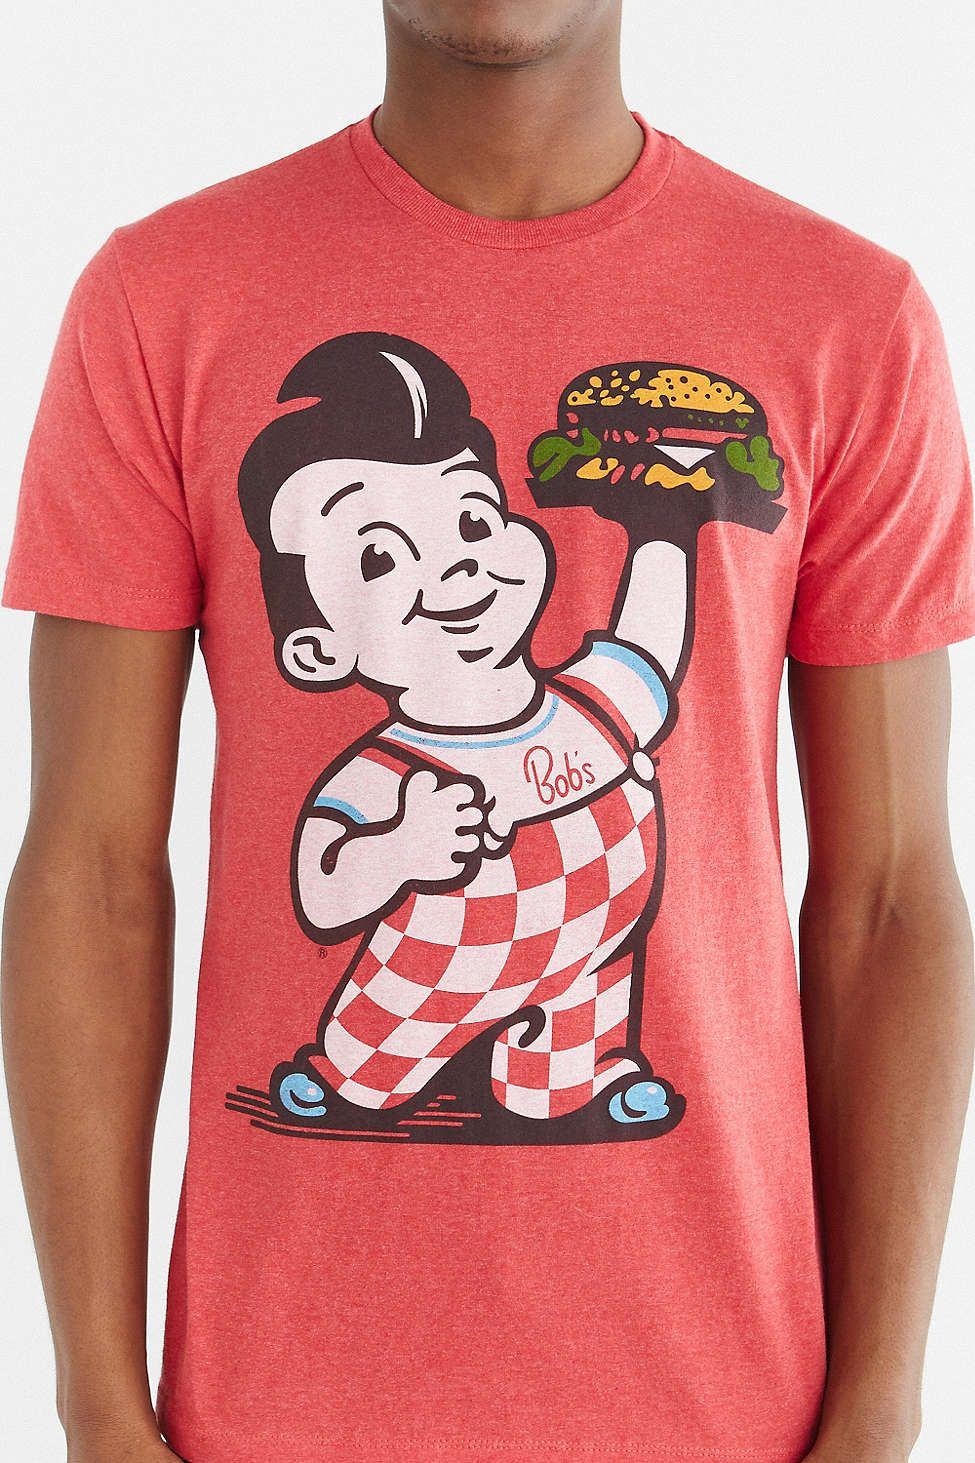 8b96b121c21 Bobs Big Boy T Shirts